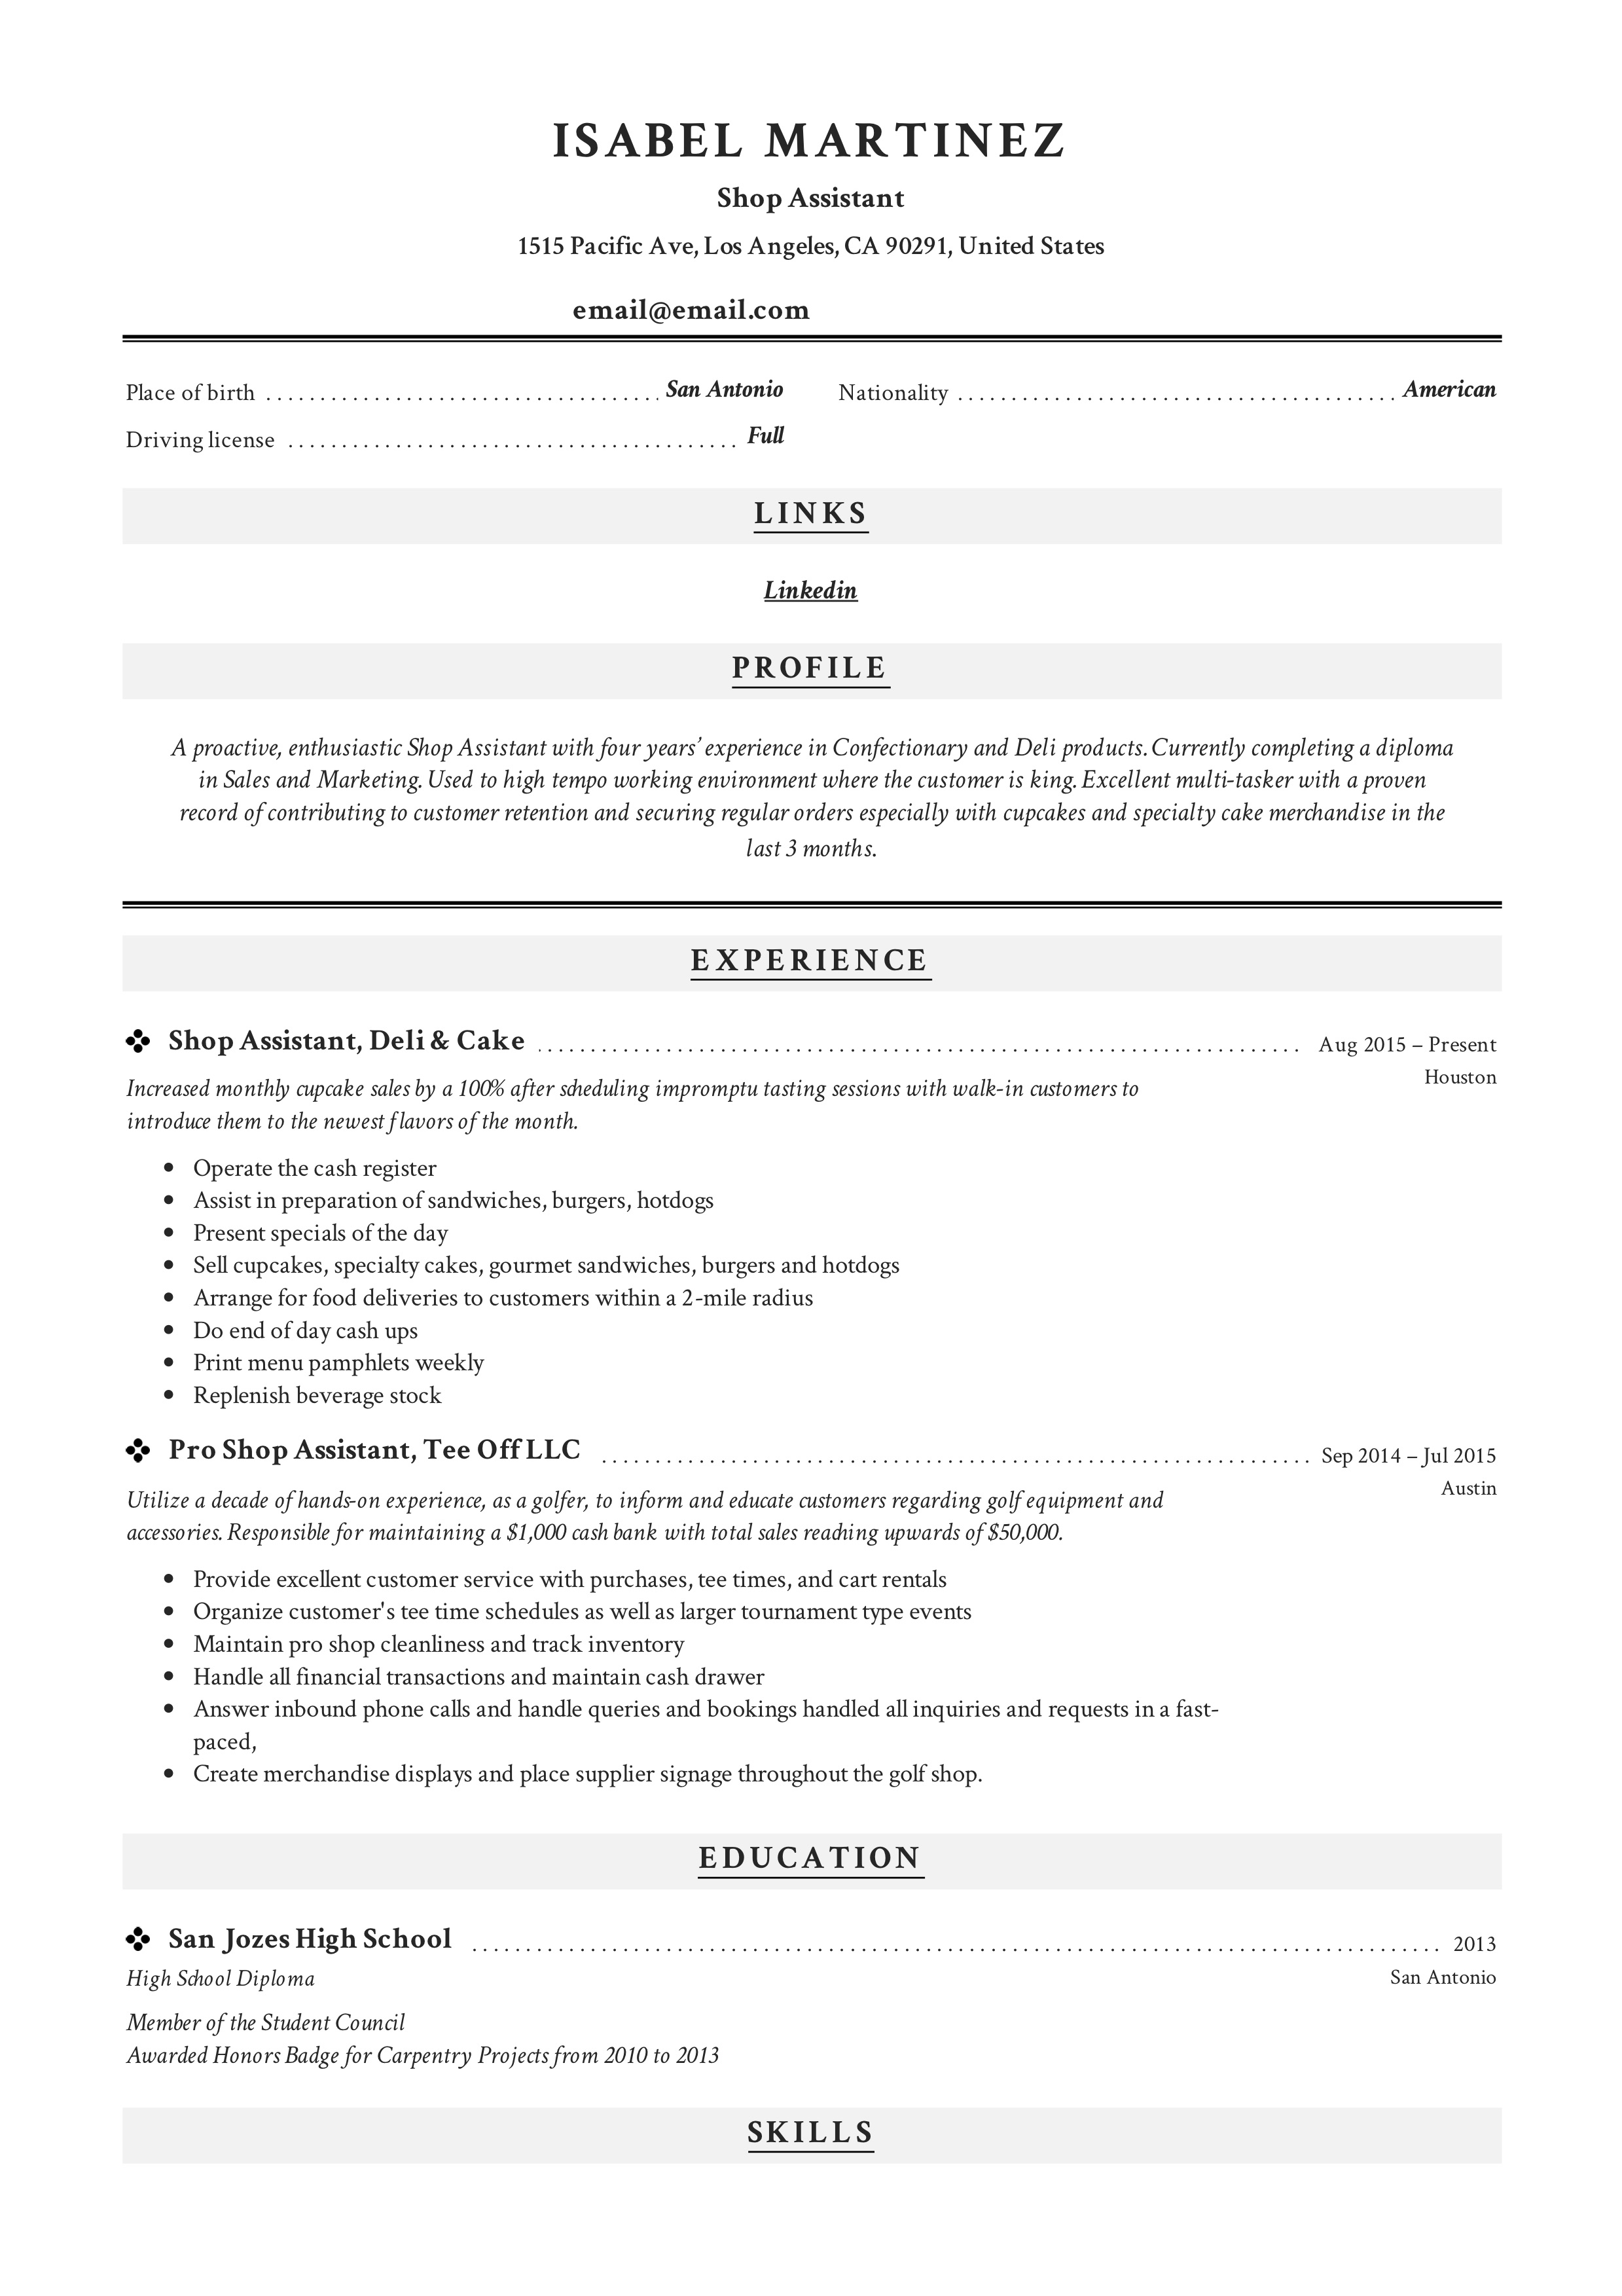 Shop Assistant Resume Example Writing Guide Pdf Samples 2019